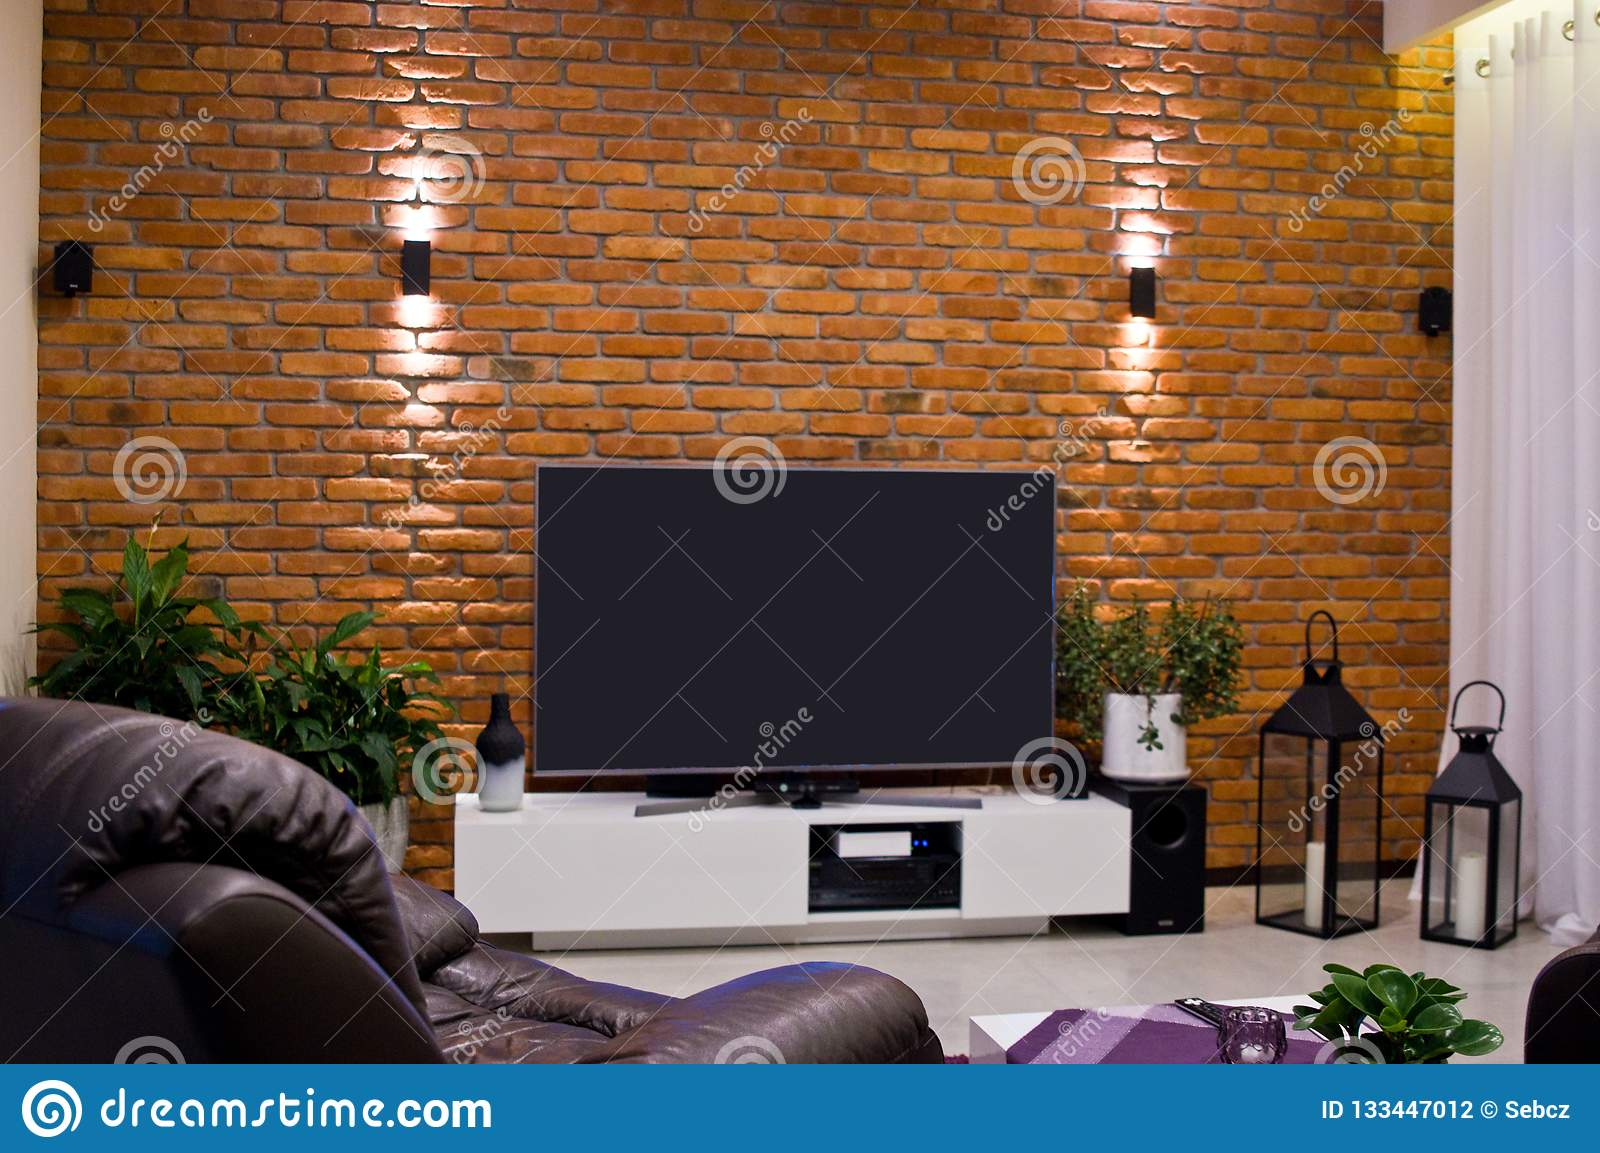 Modern Home Room Design With Red Brick Wall And Flat Led Television Stock Photo Image Of Light Living 133447012